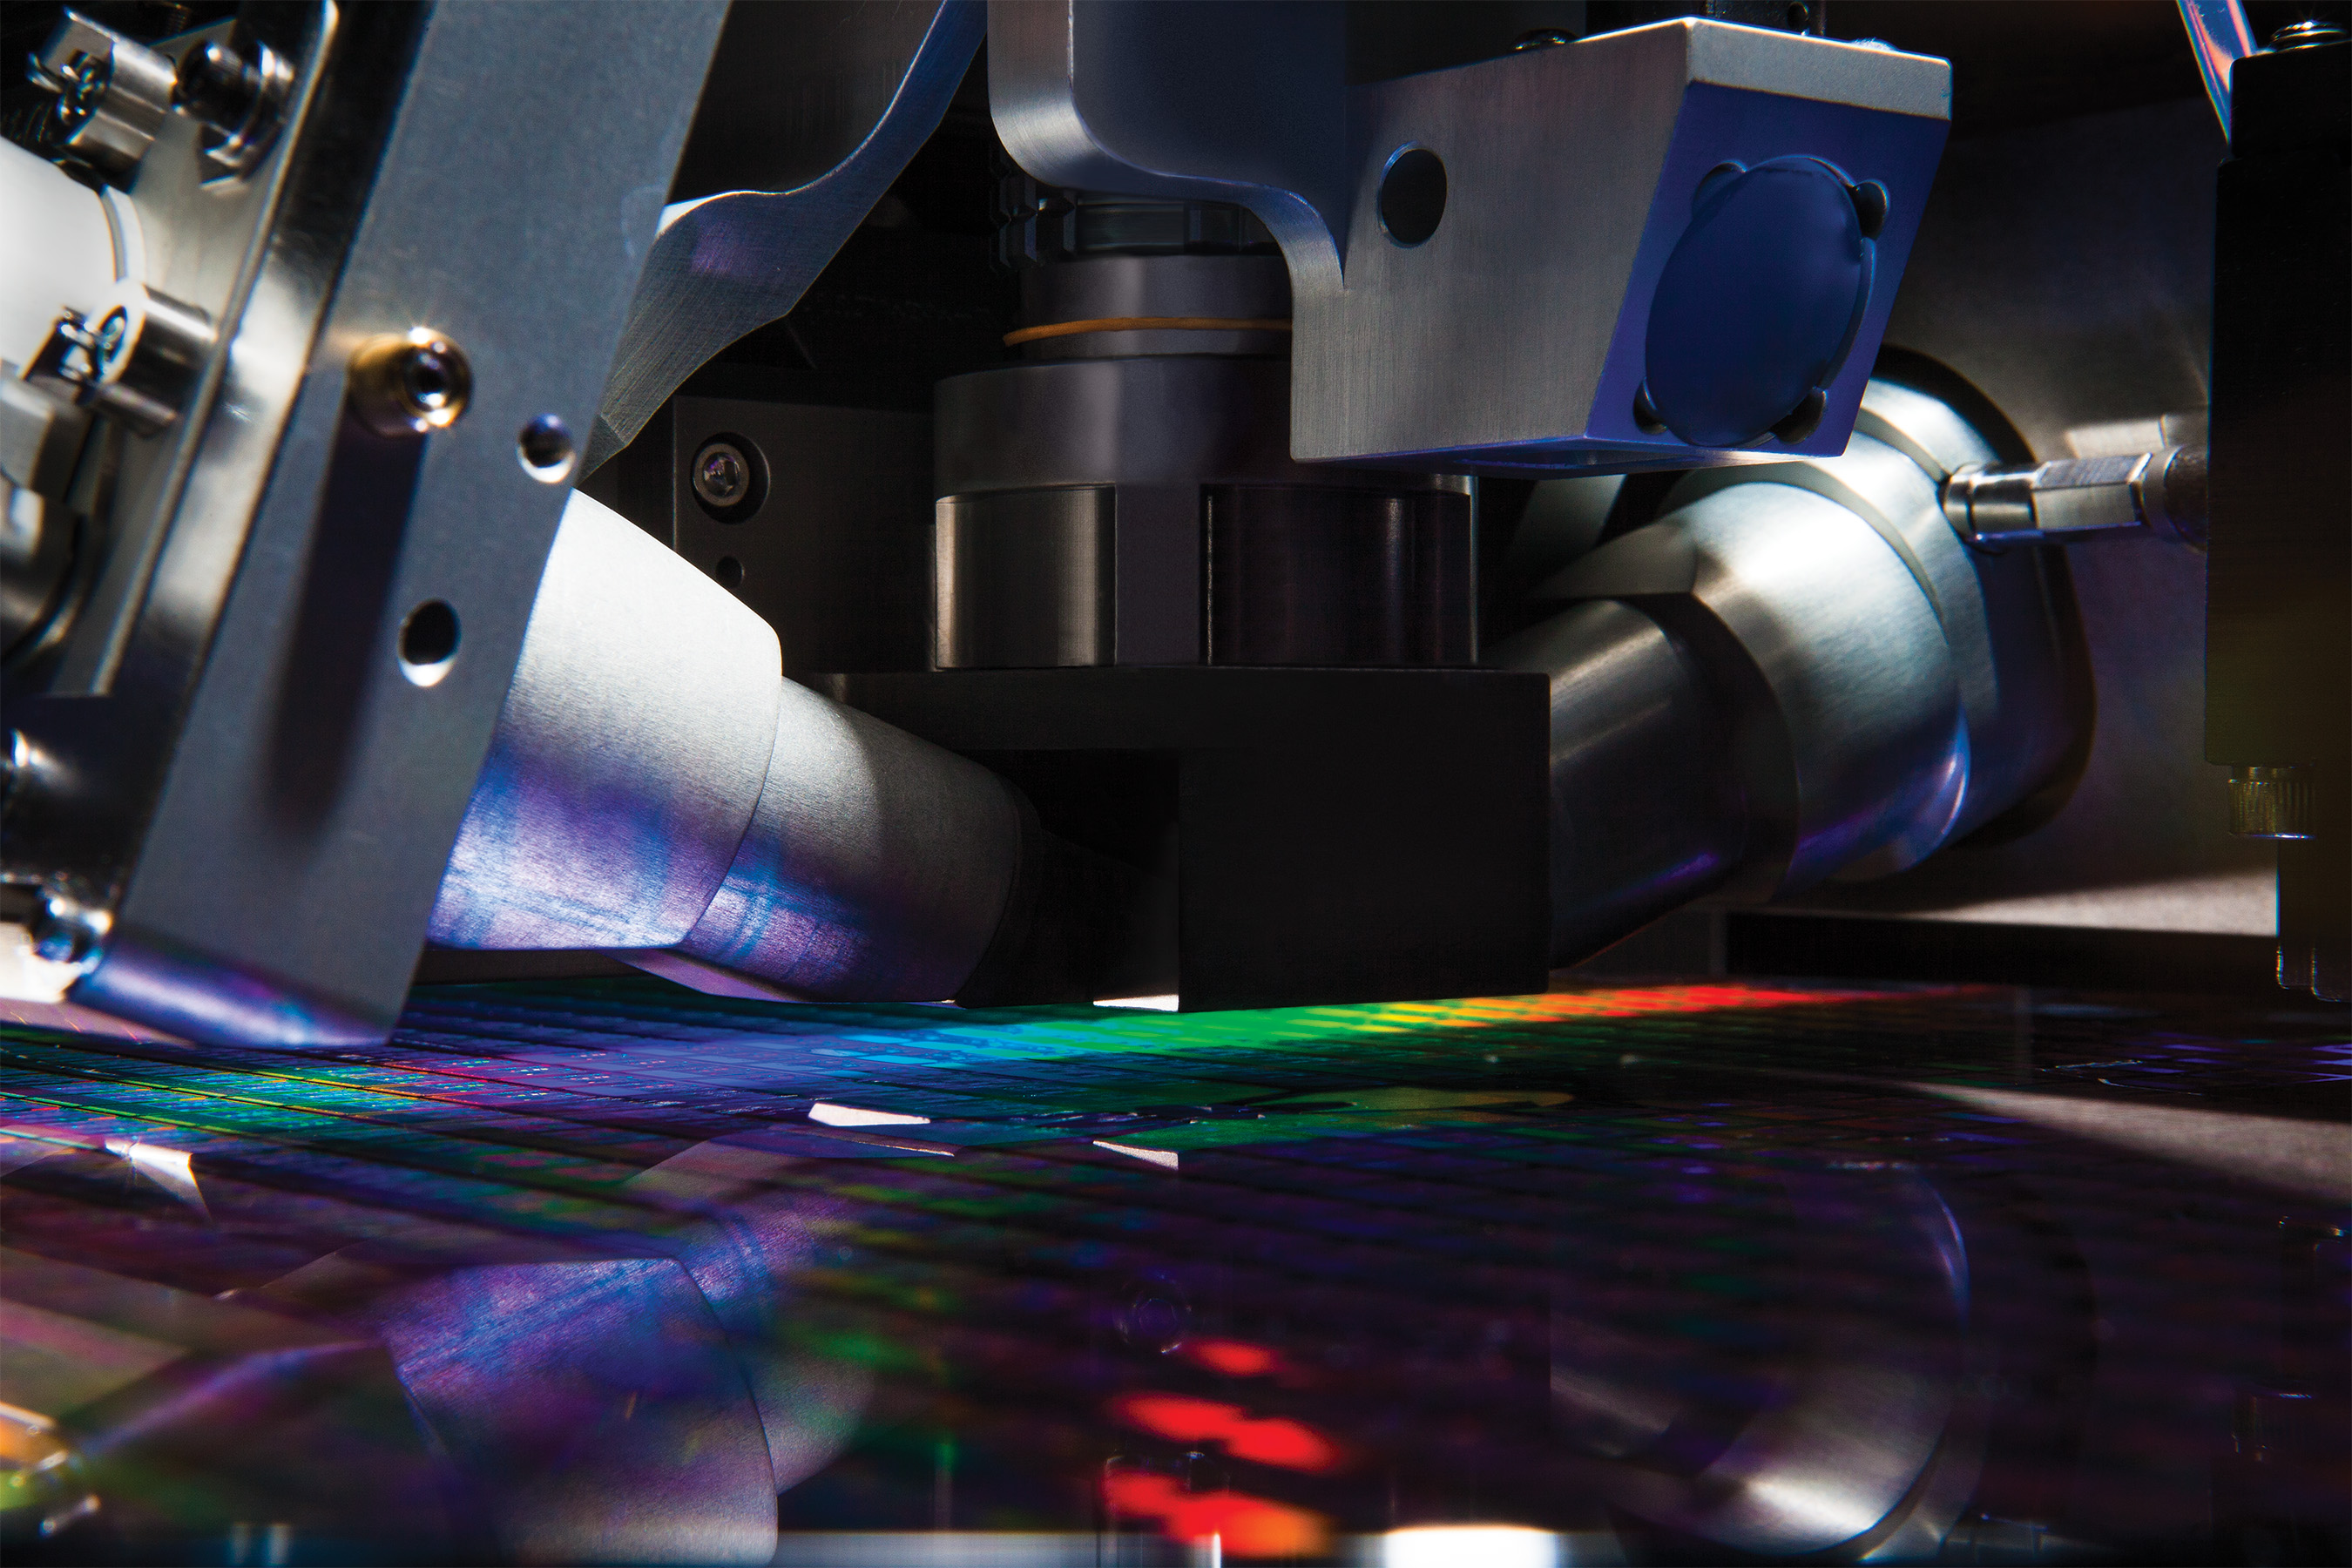 KLA-Tencor's metrology systems include multiple optical technologies enabling non-destructive, production-capable measurement of overlay, film thickness, critical dimension and device profile across a diverse range of IC process layers, device types and design nodes.